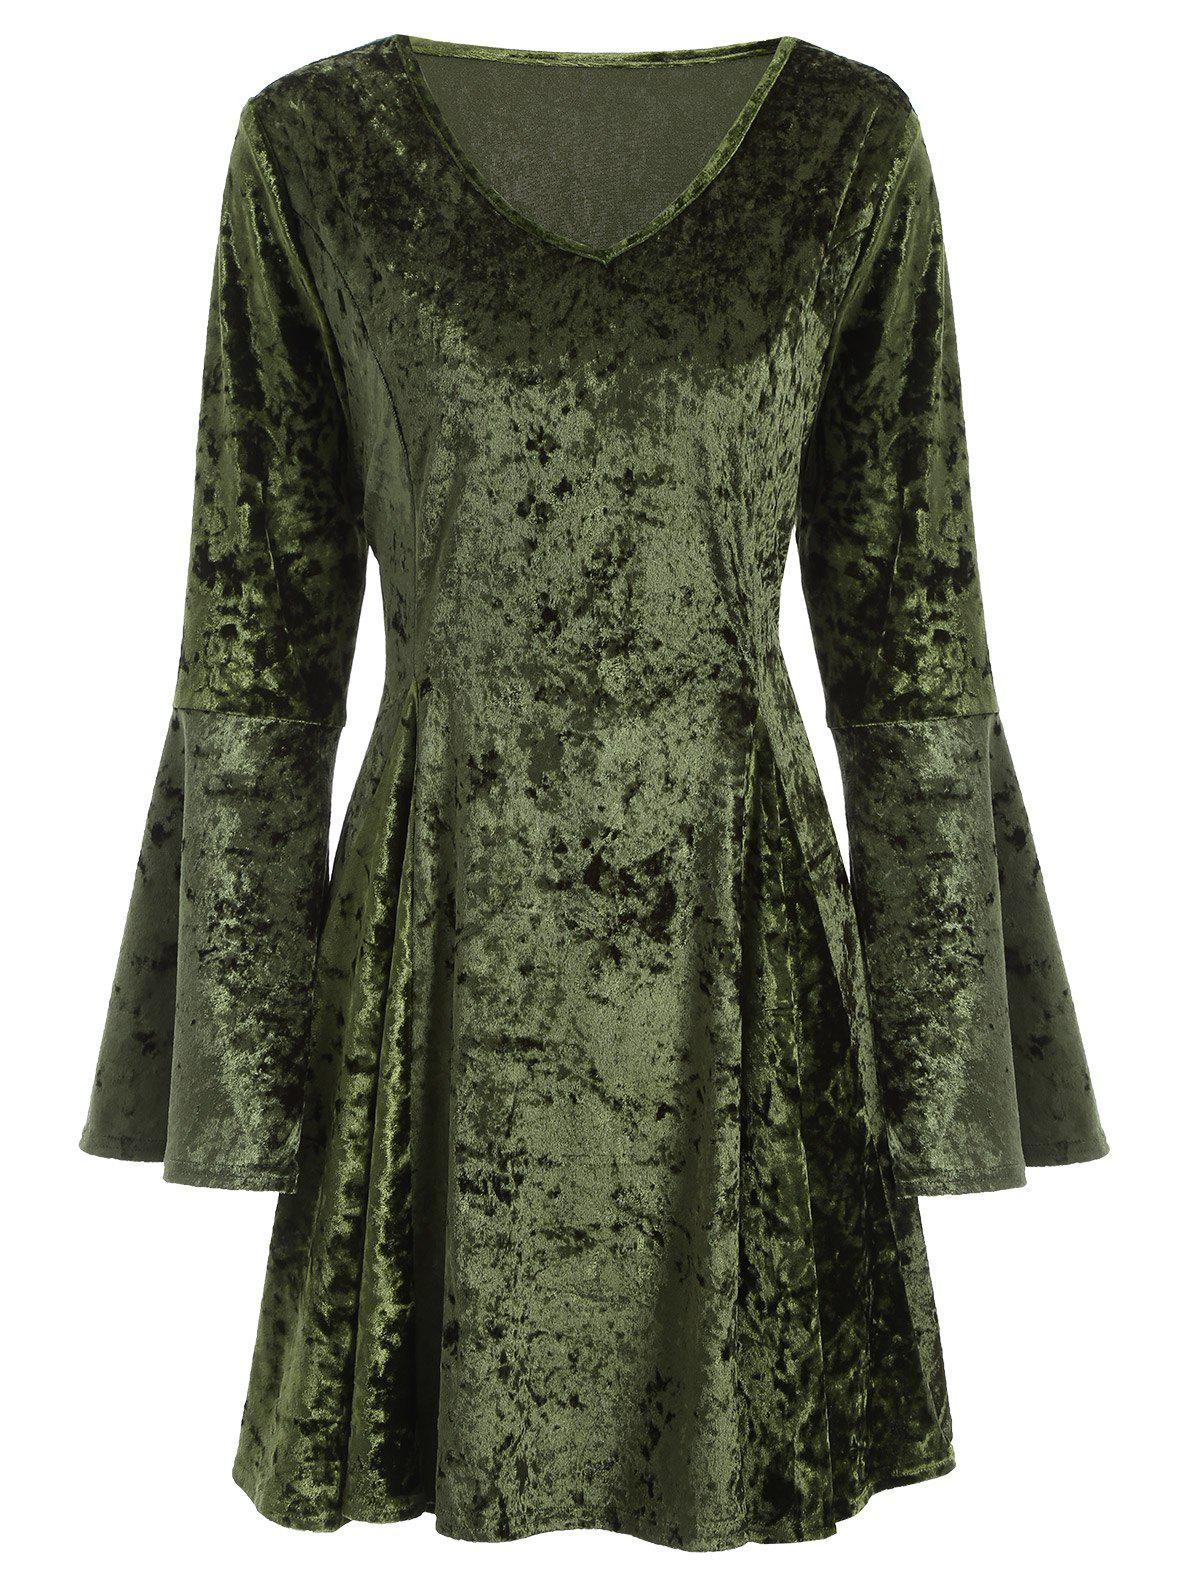 465e1ecb56 2018 V Neck Bell Long Sleeve Velvet Skater Dress In Green S ...